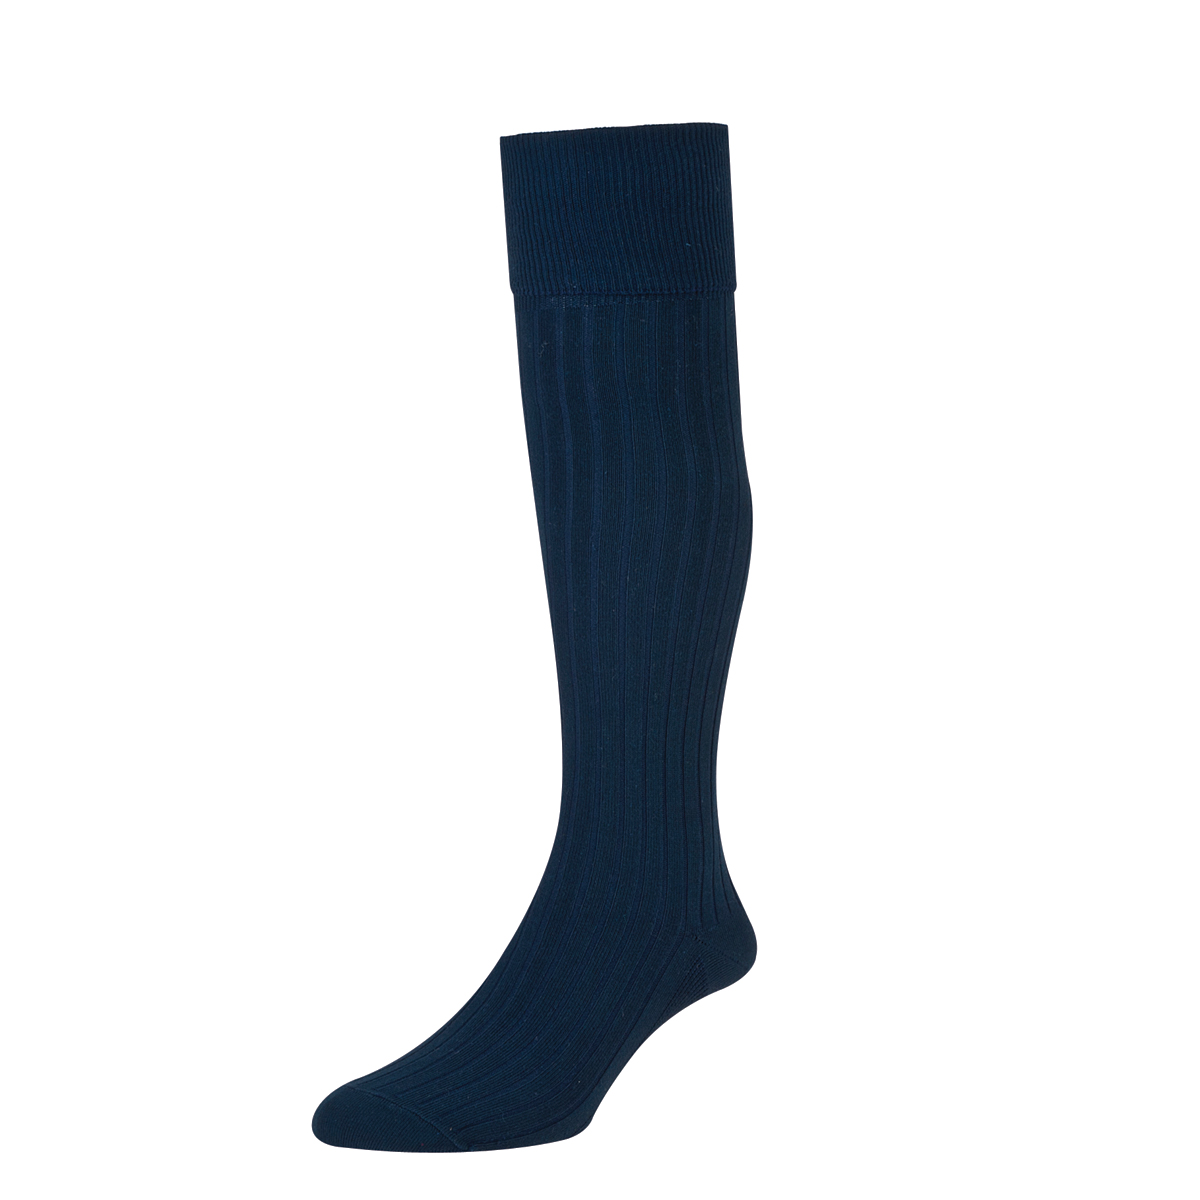 HJ Hall Mens Bermuda Golf Socks size 6-11 Navy HJ166